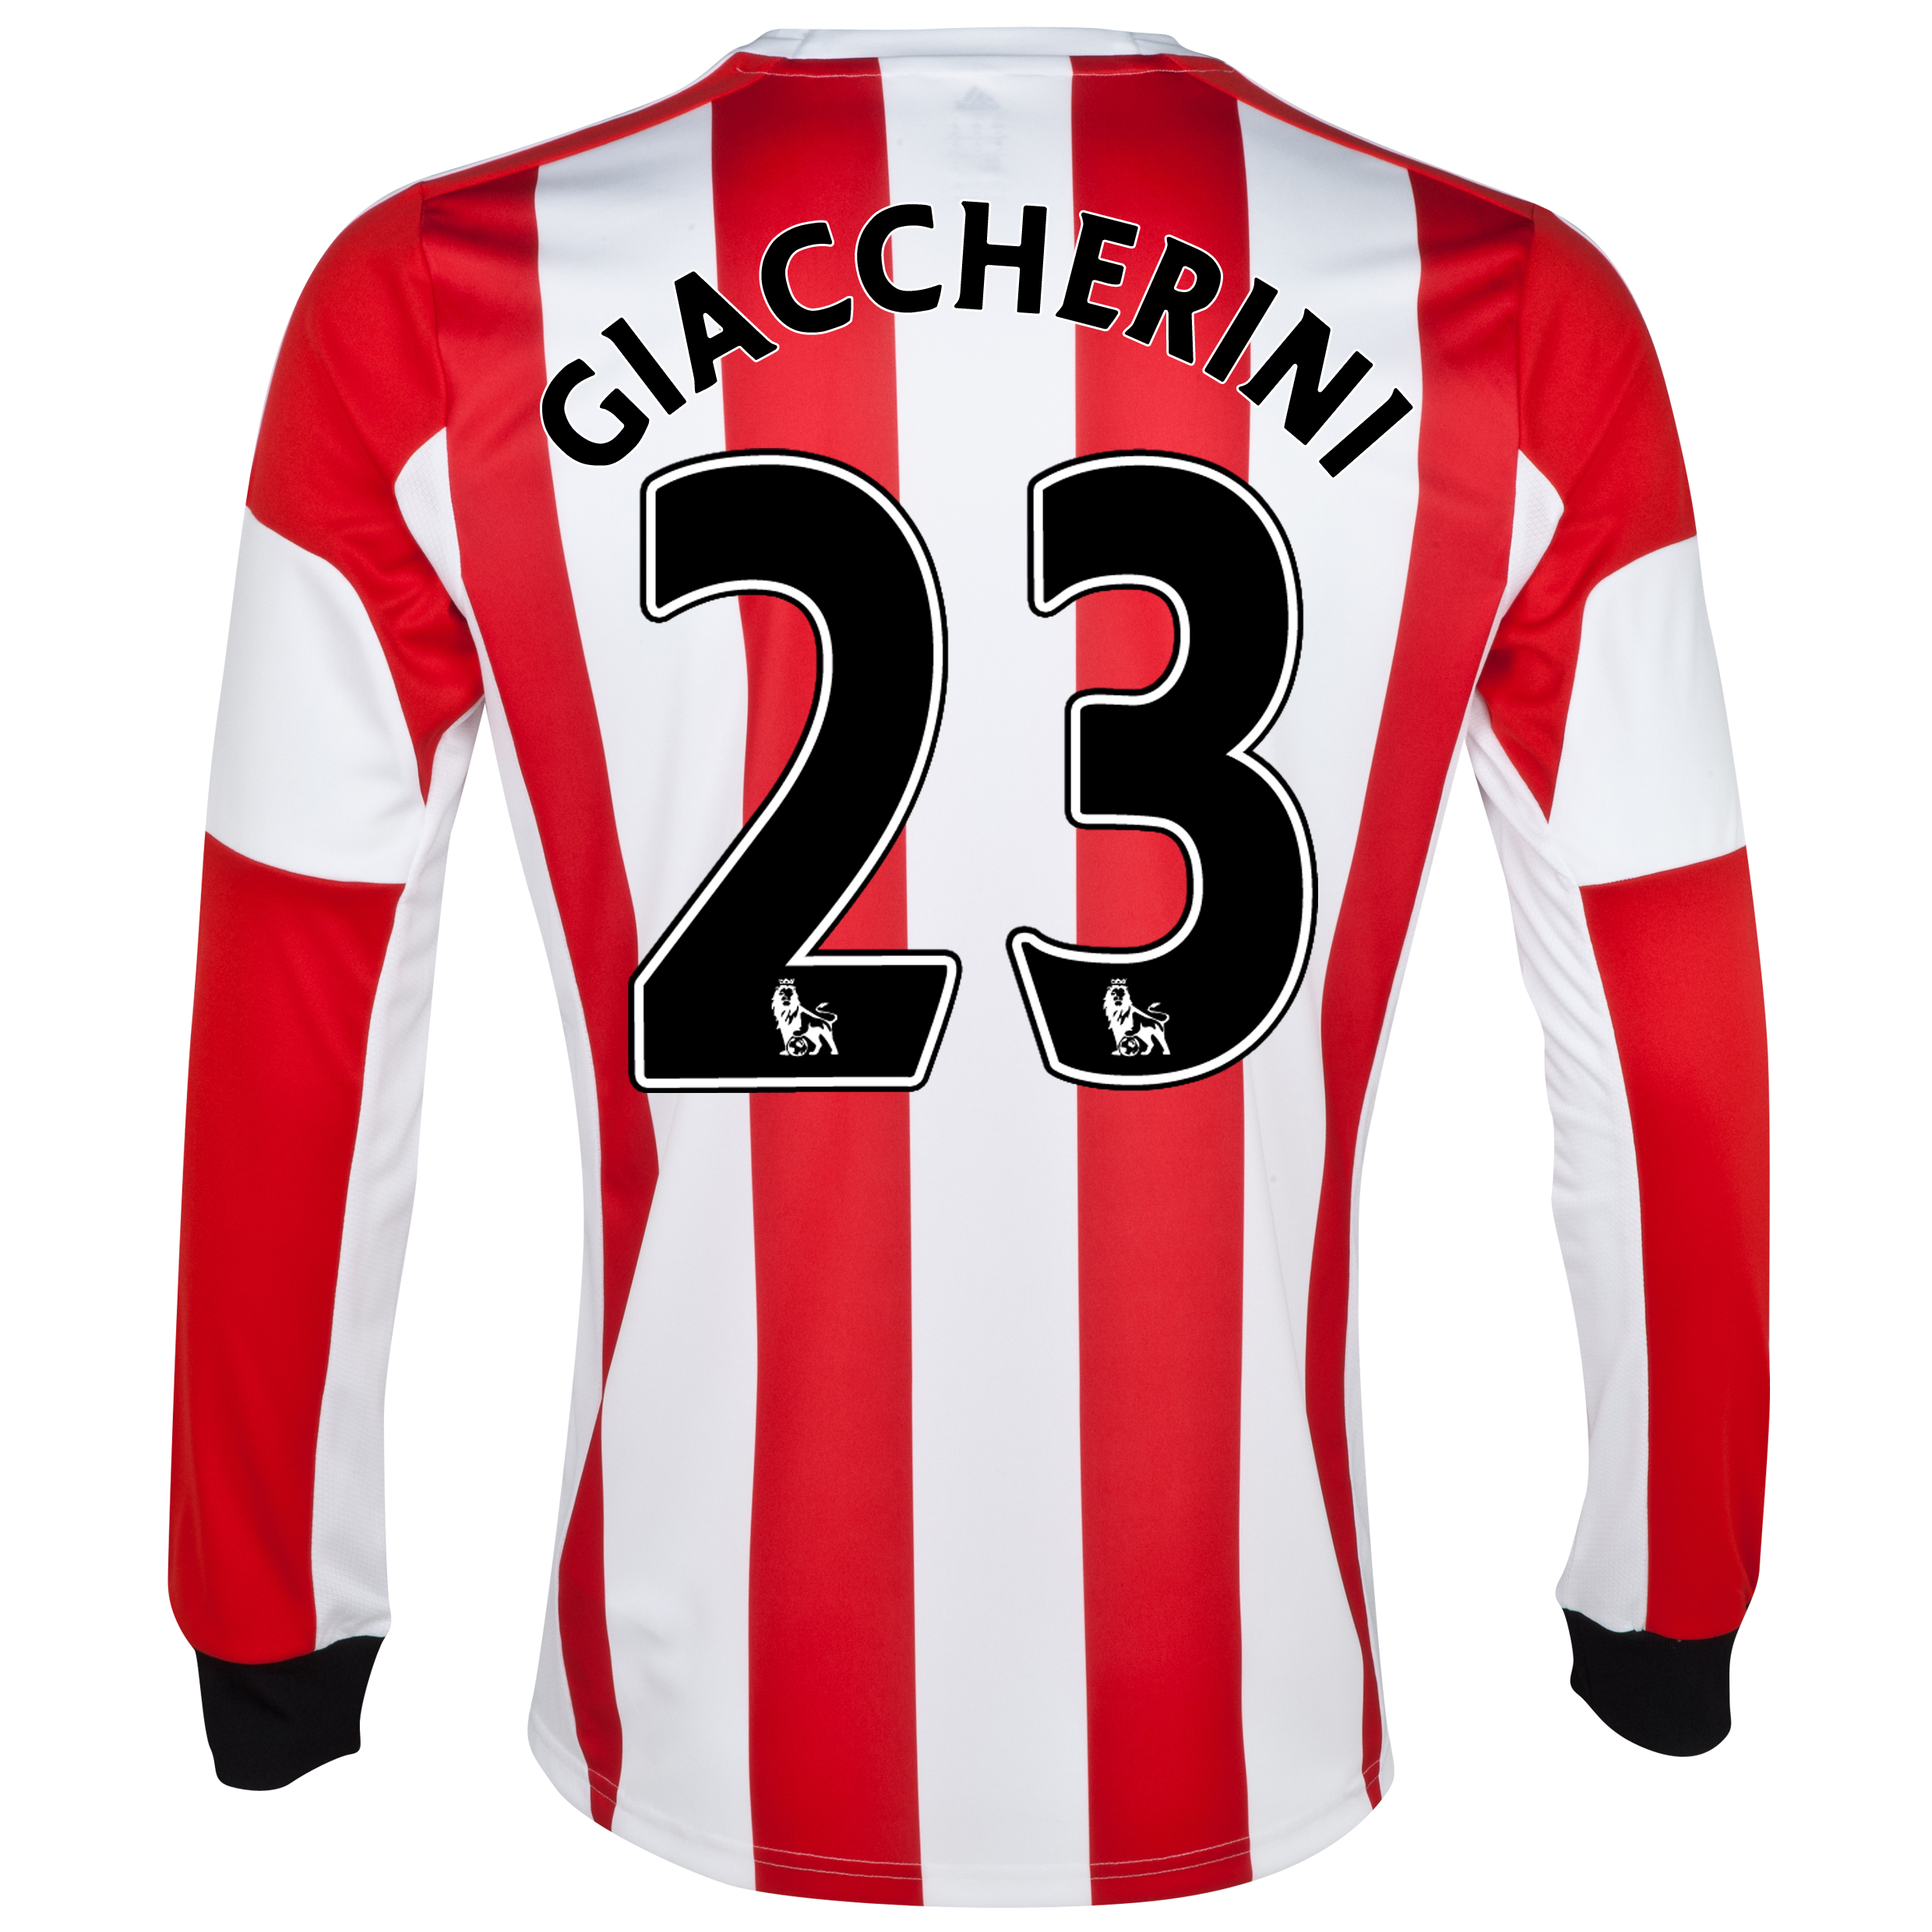 Sunderland Home Shirt 2013/14 - Long Sleeved - Junior with Giaccherini 23 printing